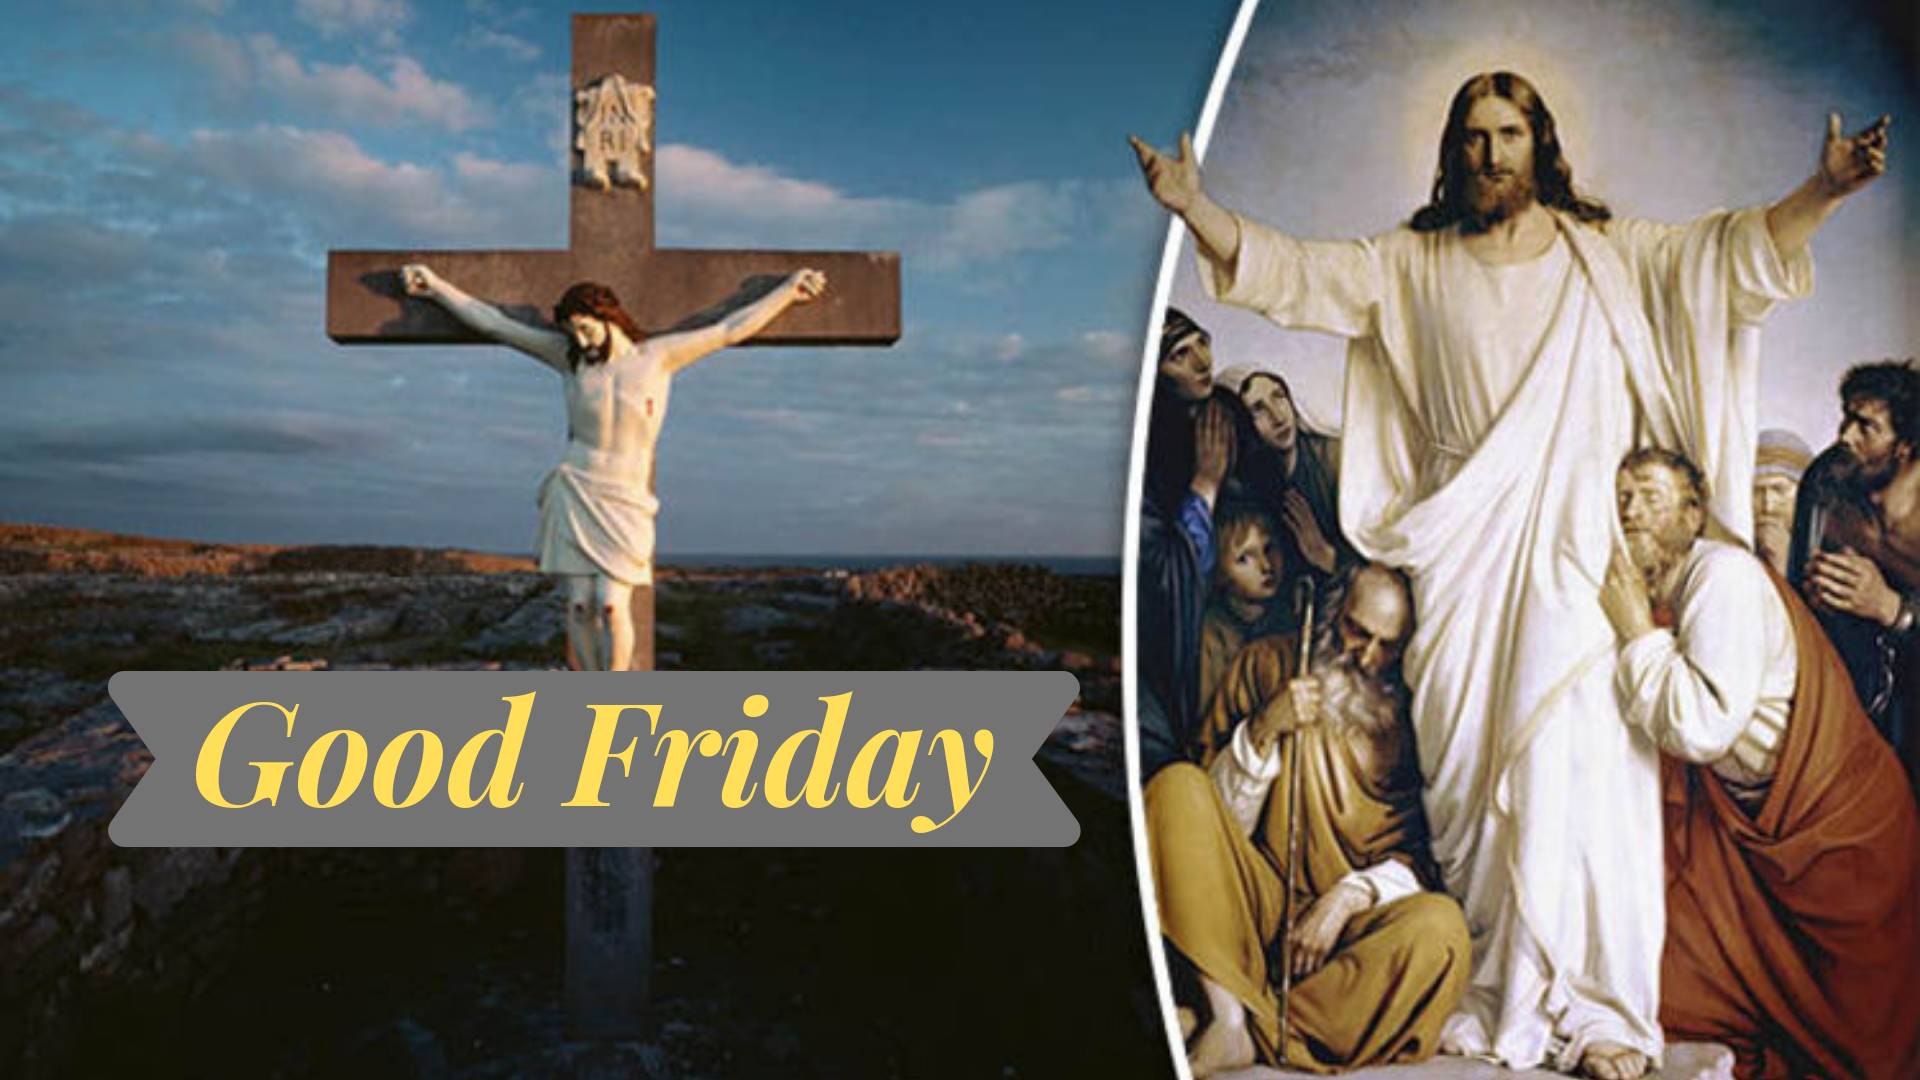 Good Friday 2020 Images